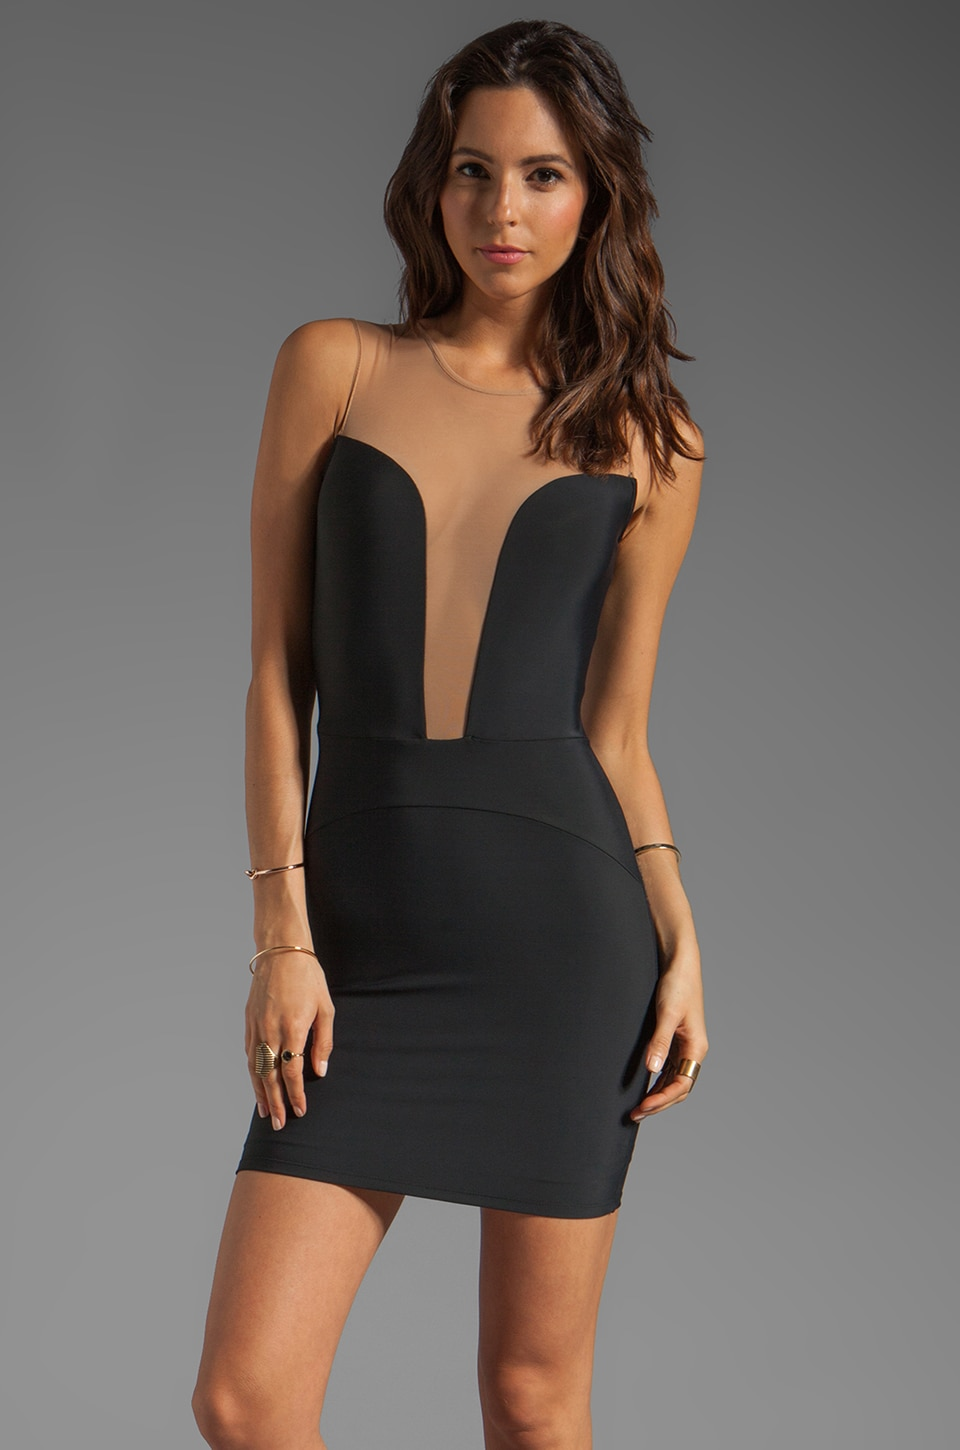 Boulee Minka Dress in Black